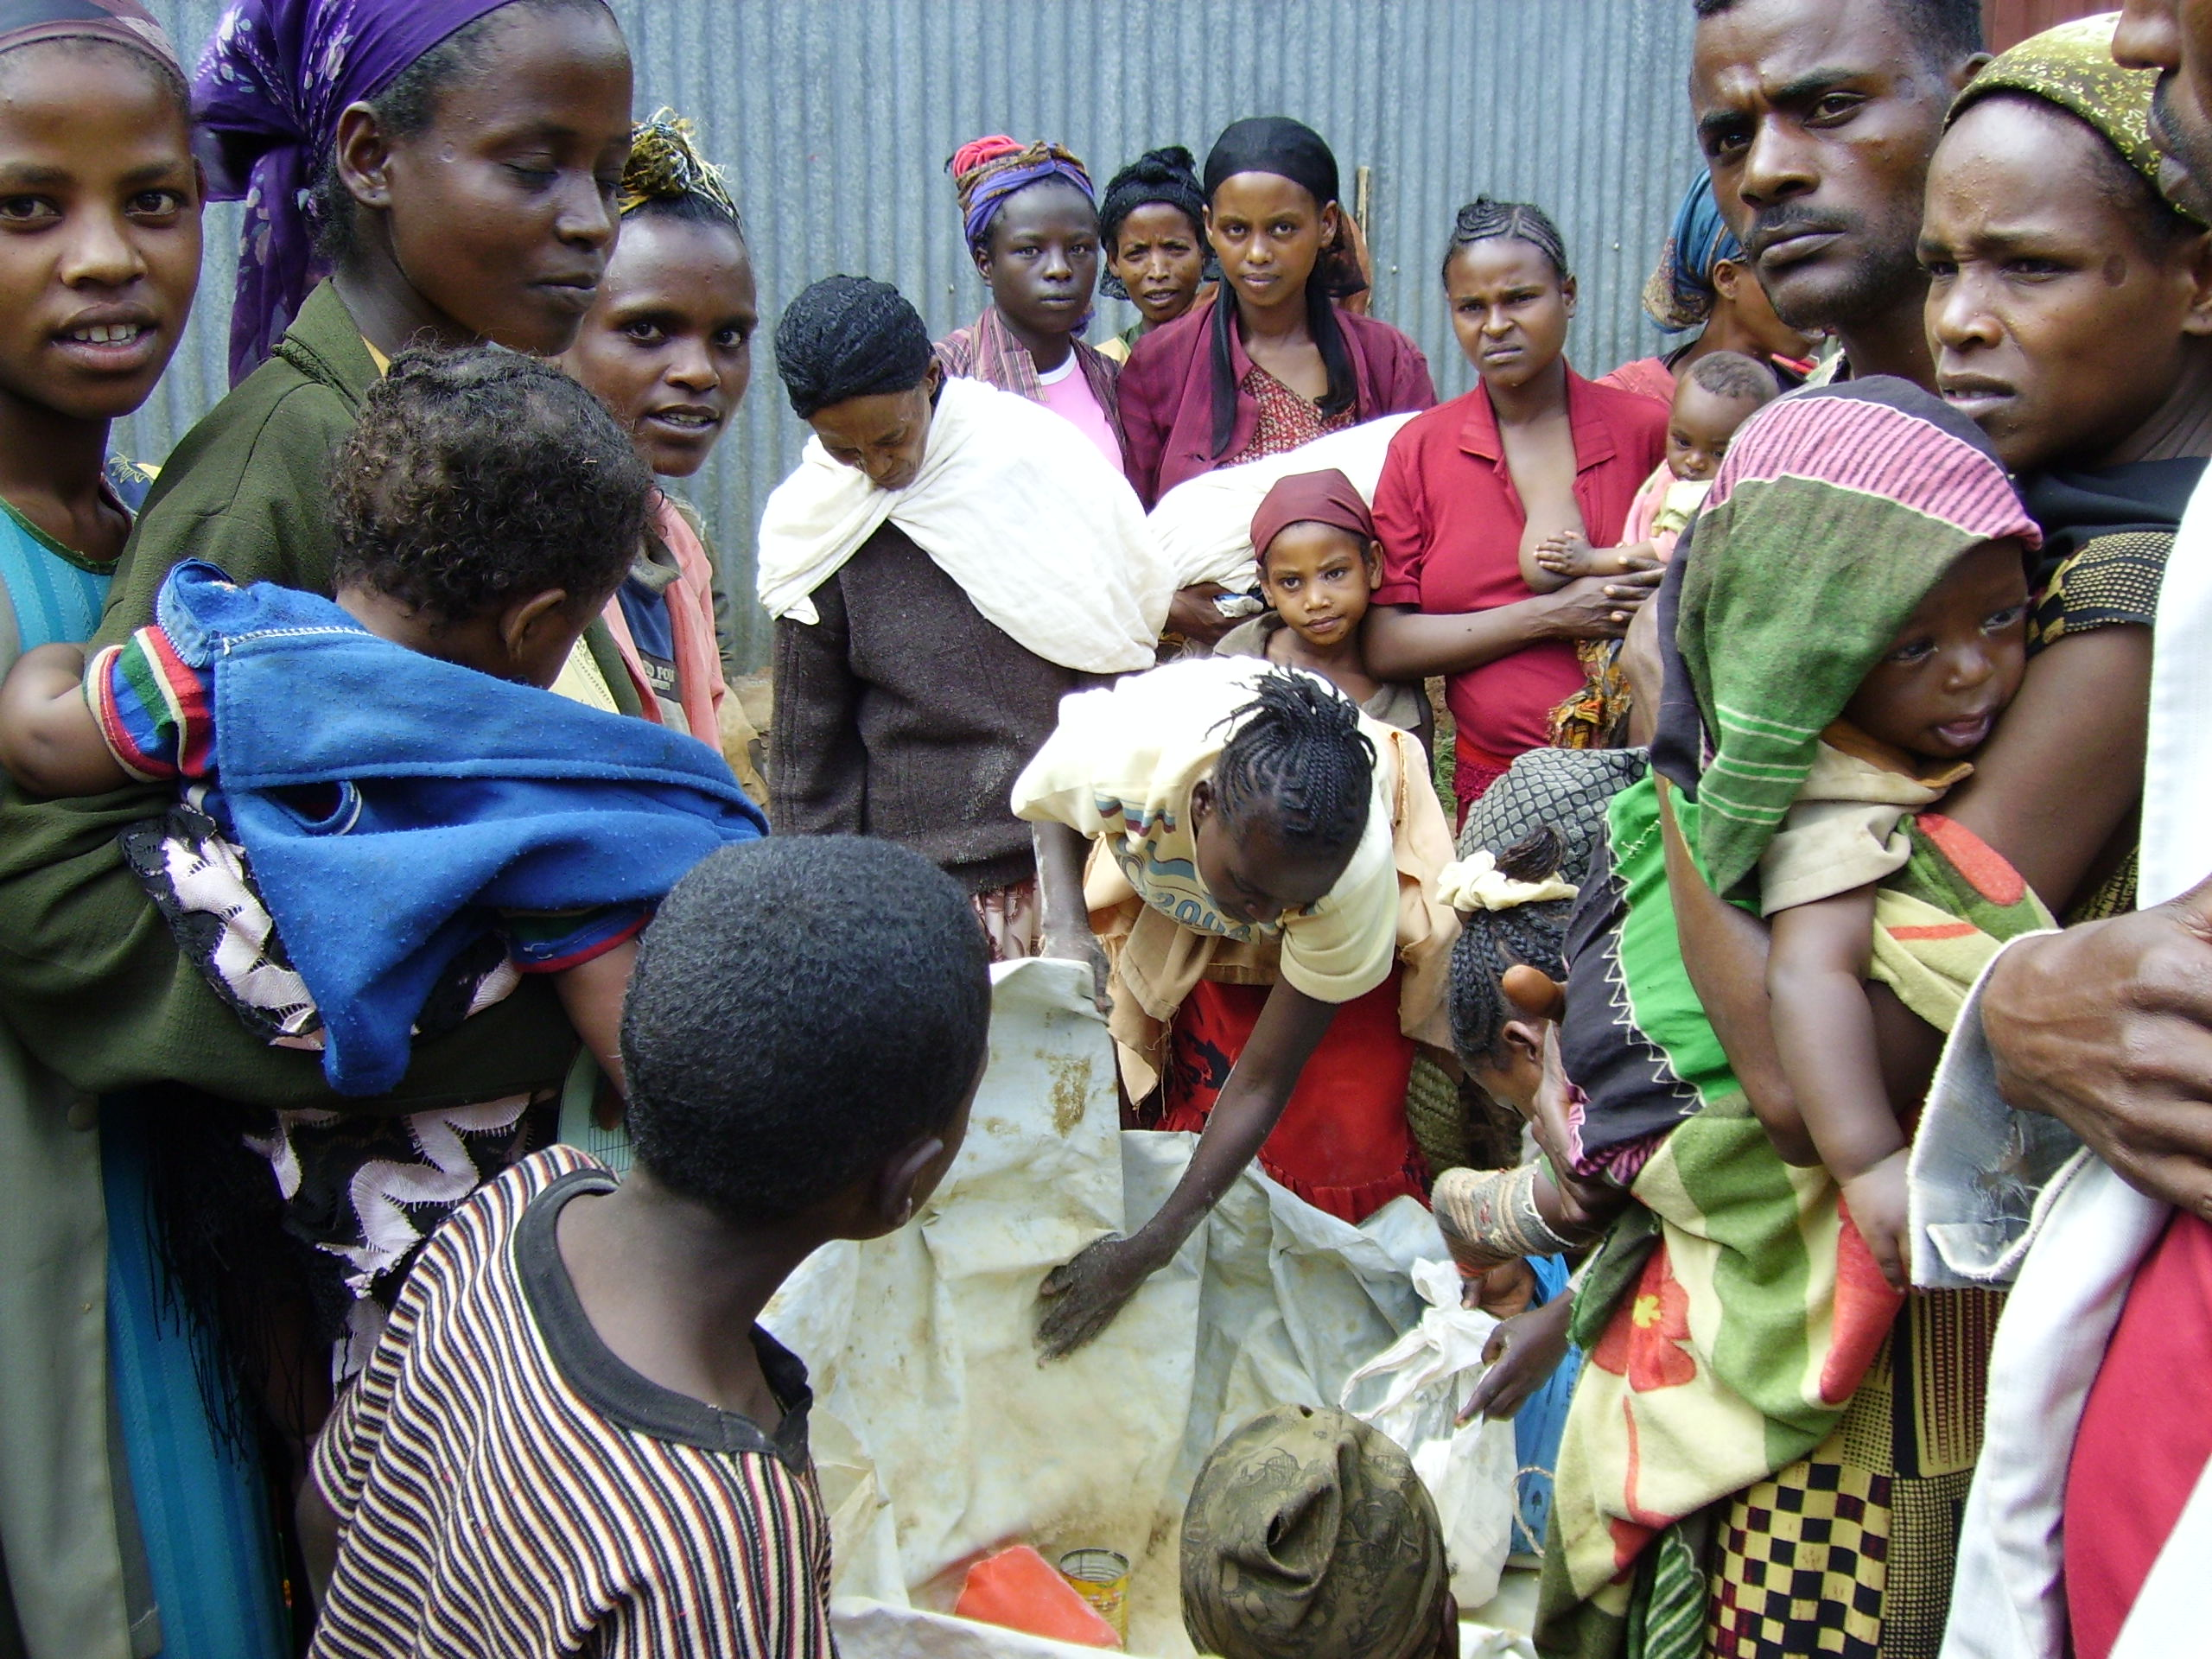 Recipients receiving supplementary foodstuffs distributed by Concern Worldwide in Badessa, Wolayita District of southern Ethiopia.